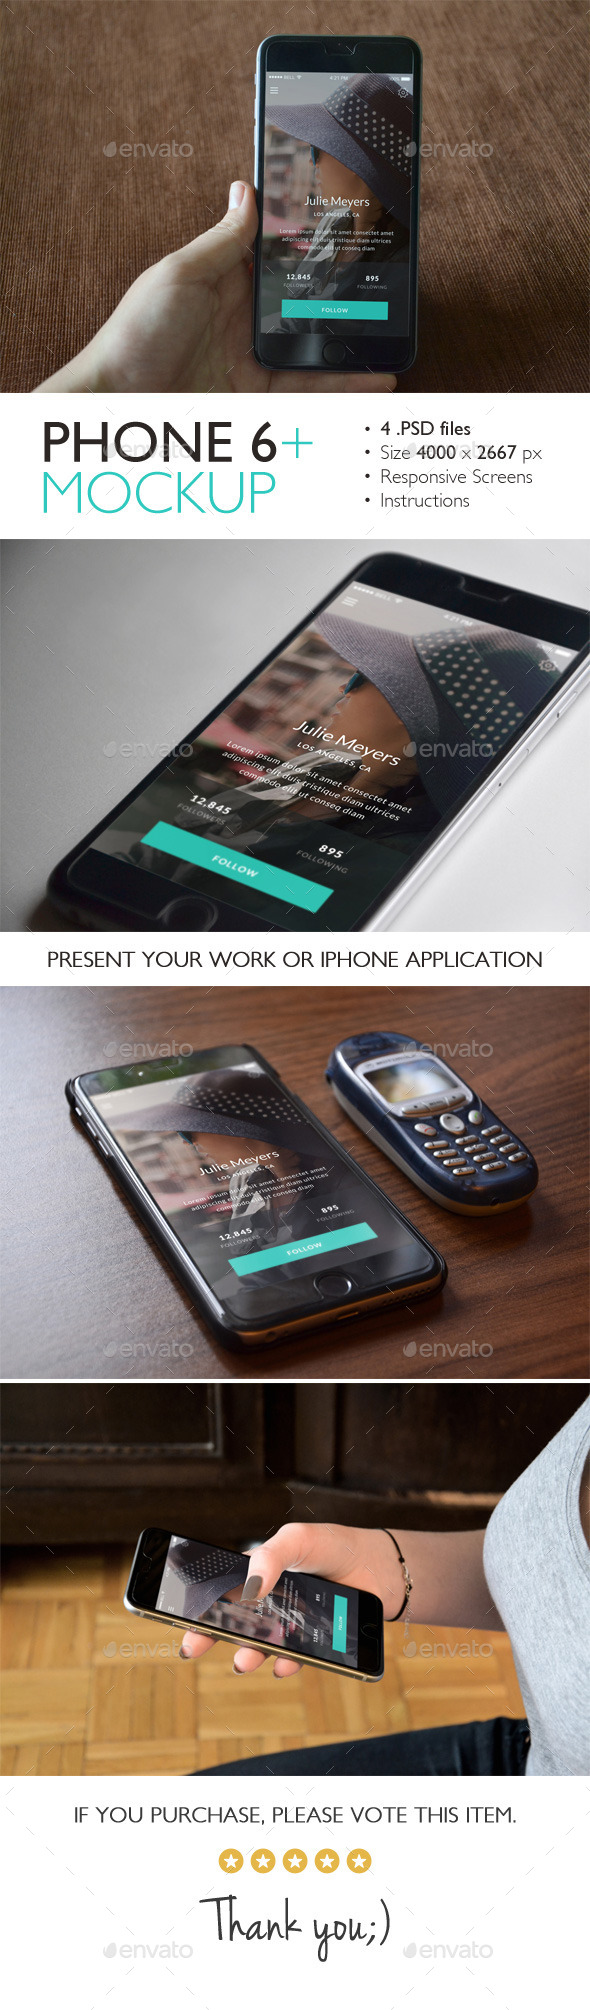 GraphicRiver Phone 6 Plus Mockup 11007700